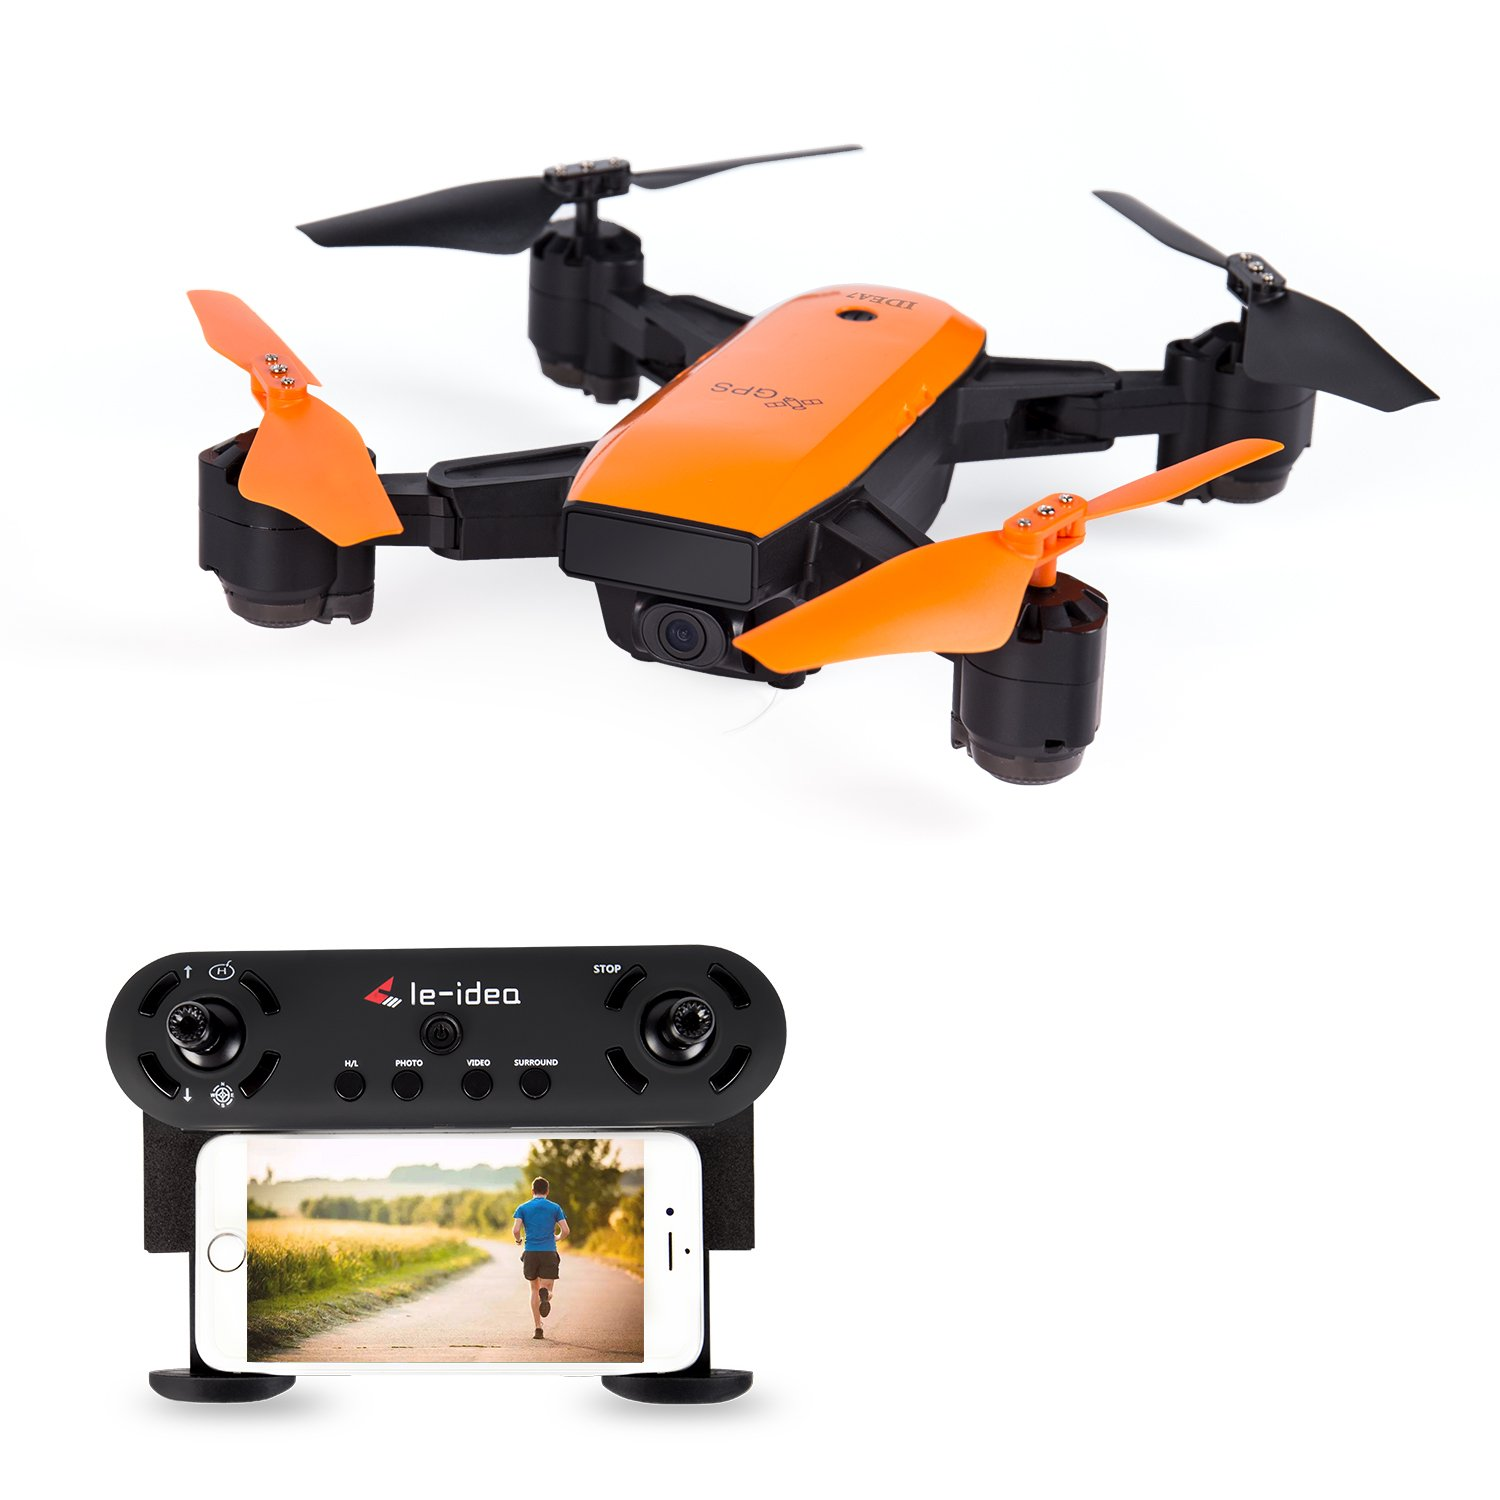 LE-IDEA IDEA7 GPS WI-FI FPV RC Drone with Camera Live Video and GPS One Key Return Home Quad Copter with Map Appear and Route Drawing,720P HD Camera FOV 120° - Follow Me, Altitude Hold,Auto Surround 720P HD Camera FOV 120° - Follow Me